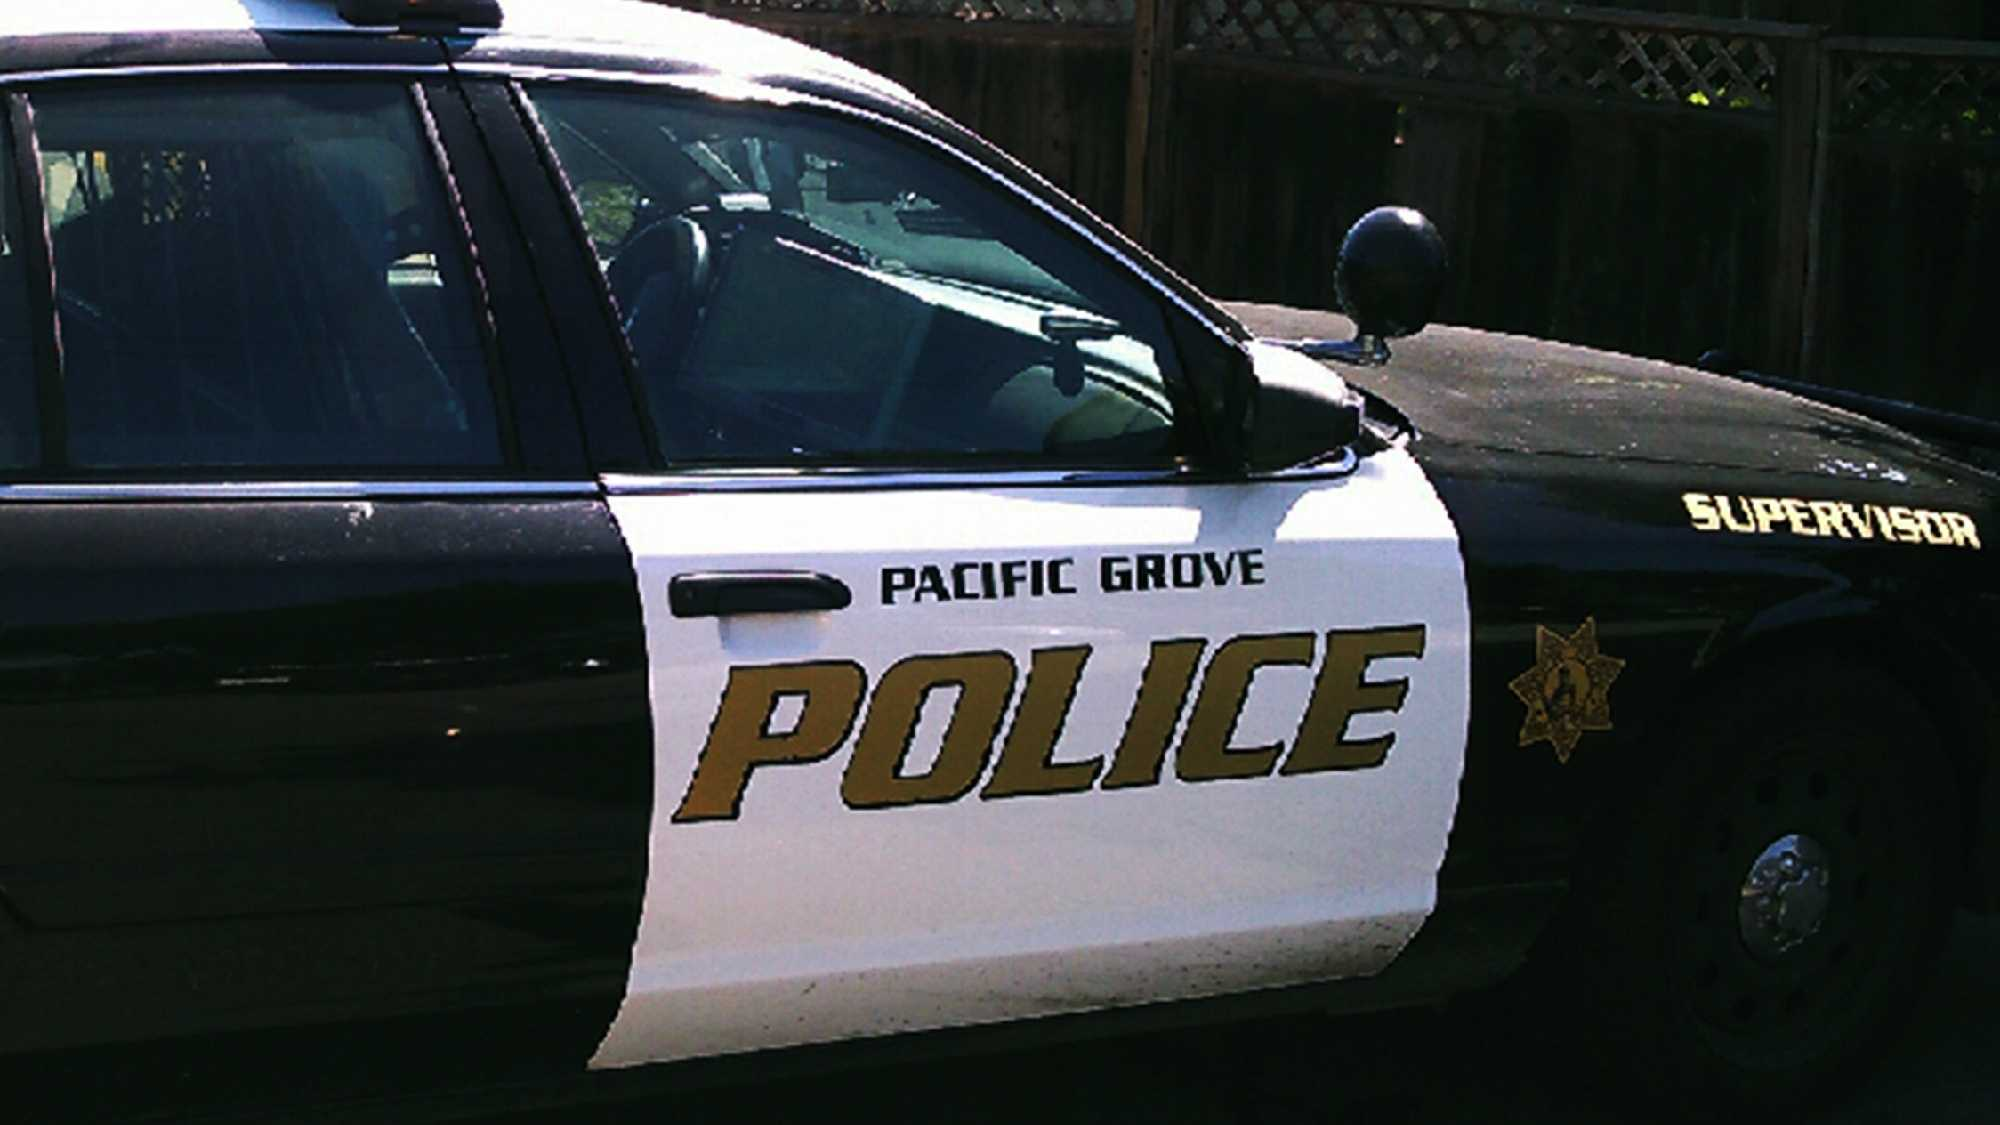 Pacific Grove Police